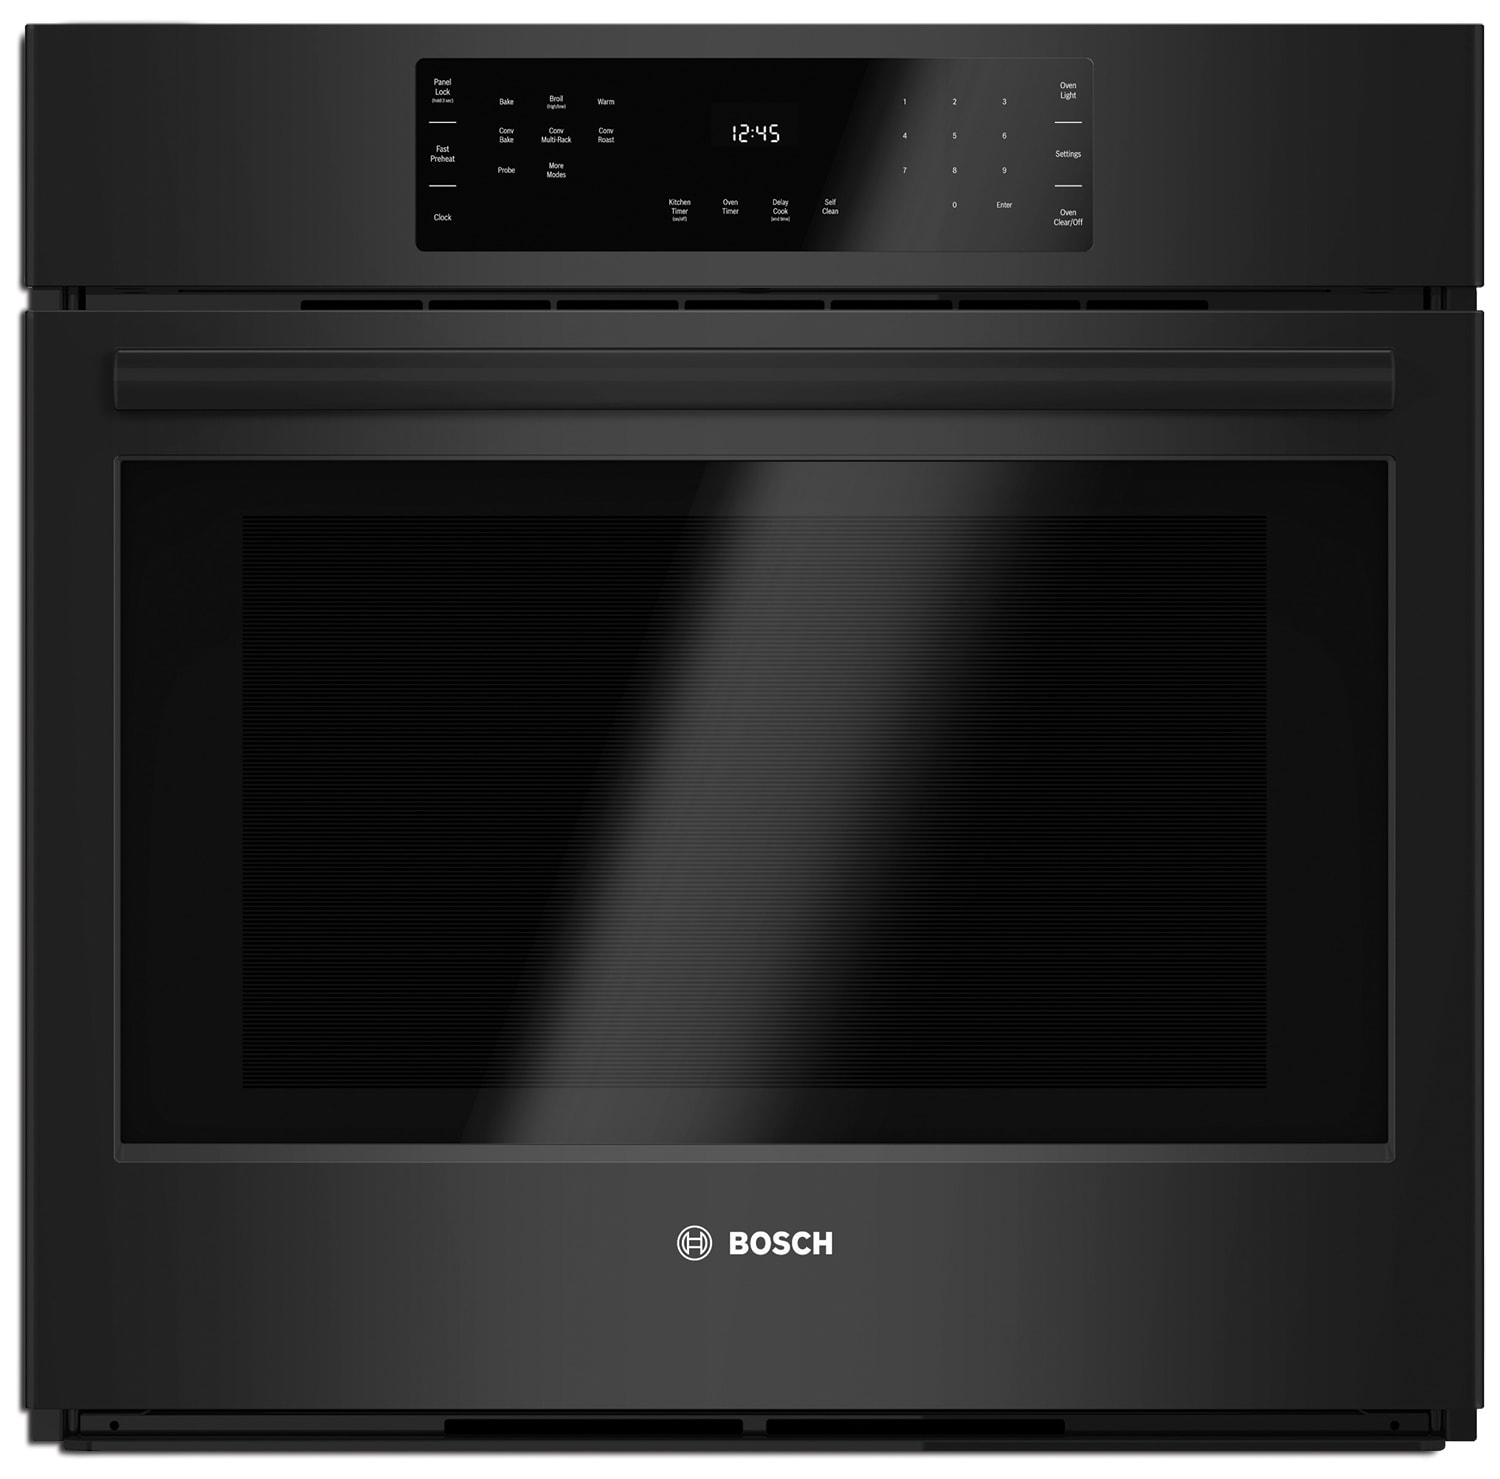 bosch 800 series 4 6 cu ft single wall oven hbl8461uc the brick. Black Bedroom Furniture Sets. Home Design Ideas